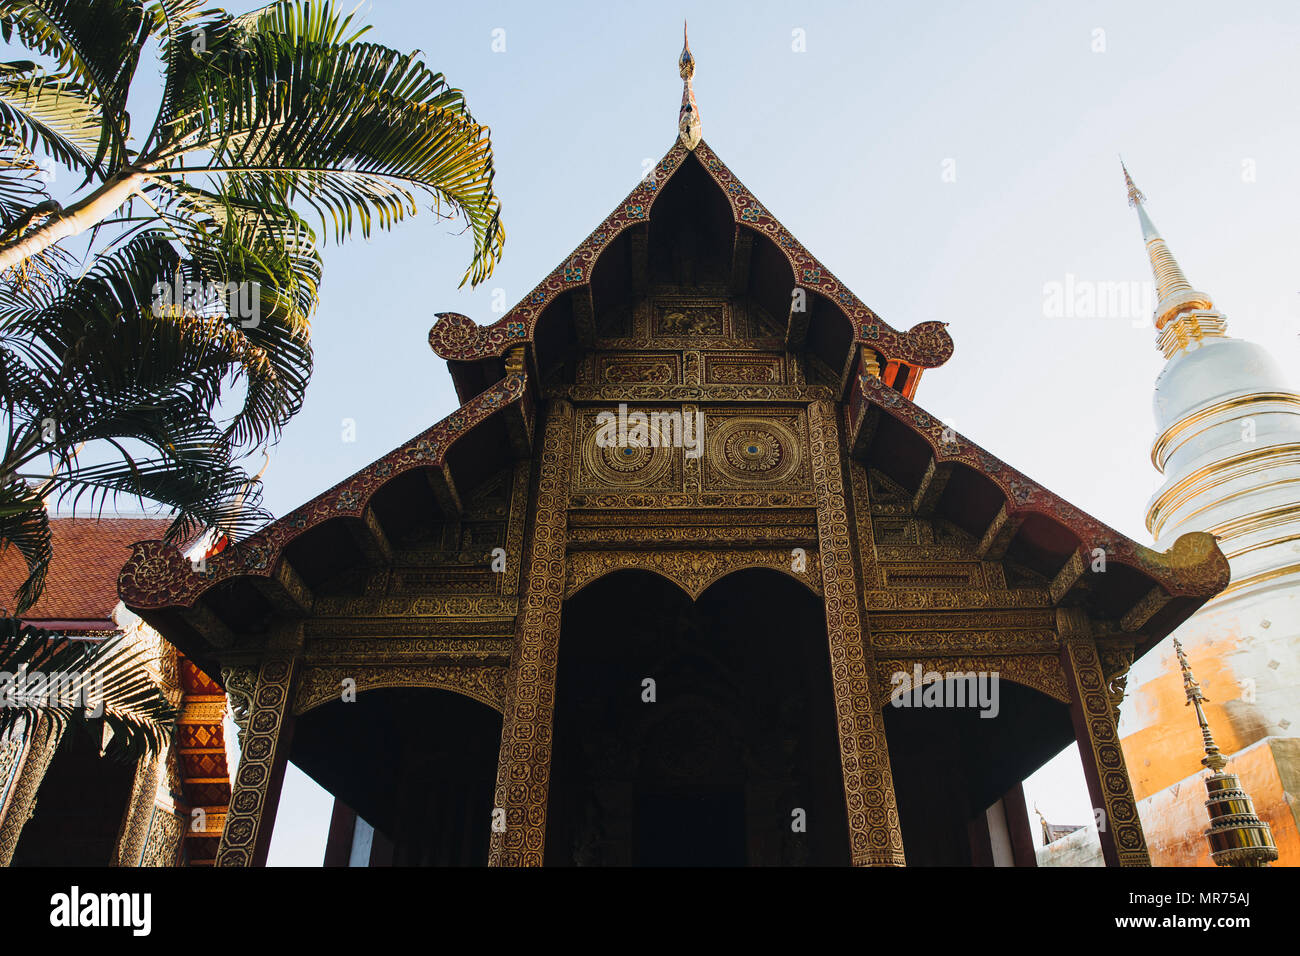 beautiful architecture of ancient buildings at Chiang Mai, Thailand - Stock Image